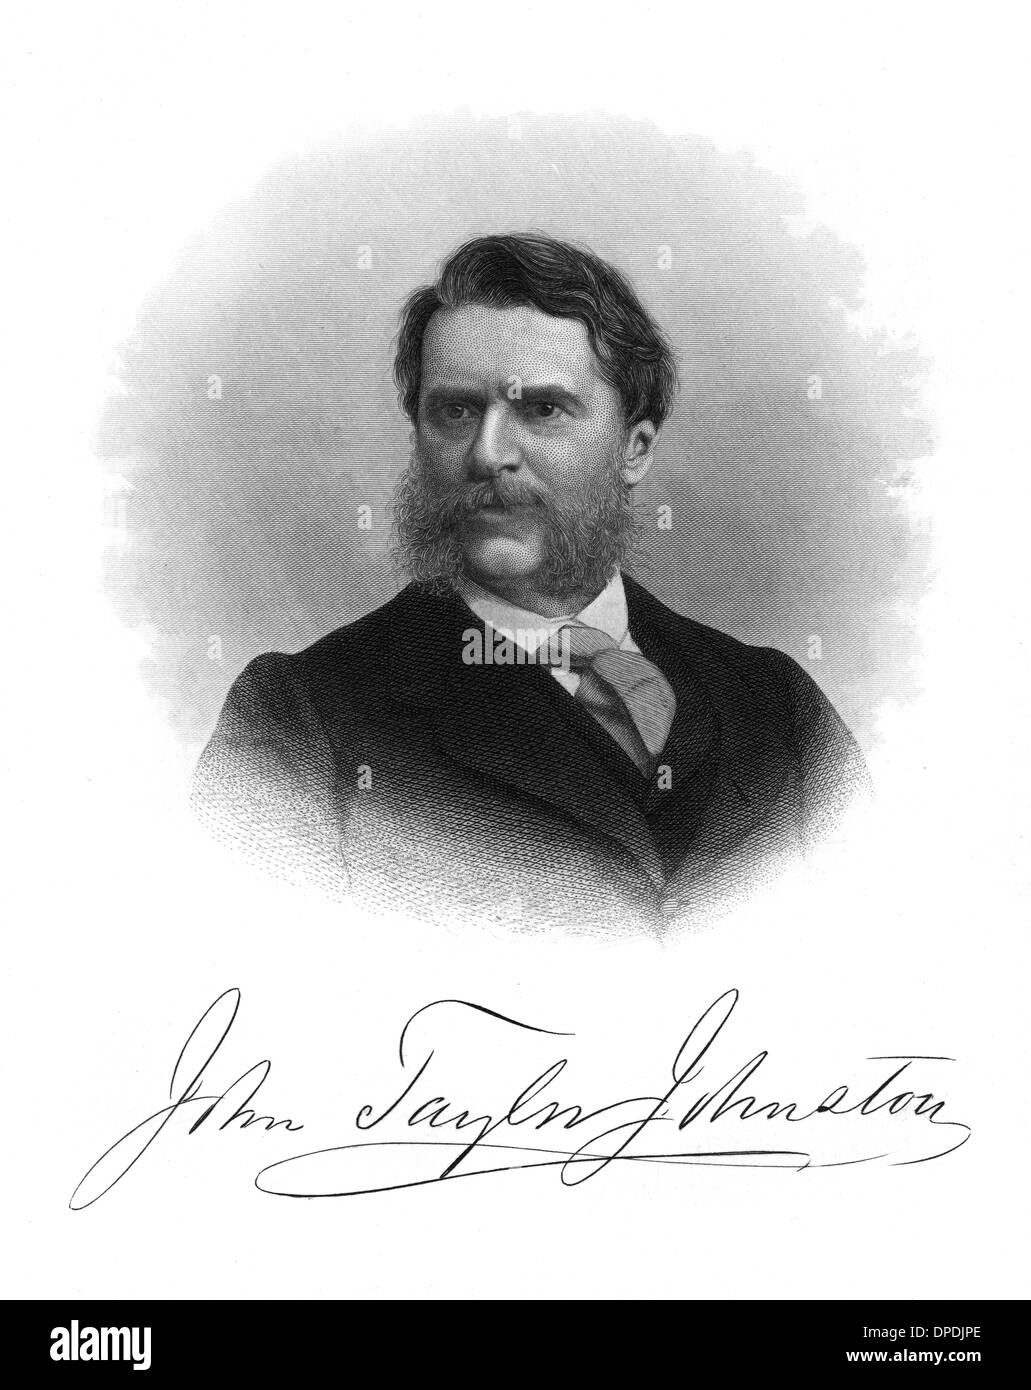 JOHN TAYLOR JOHNSTON - Stock Image